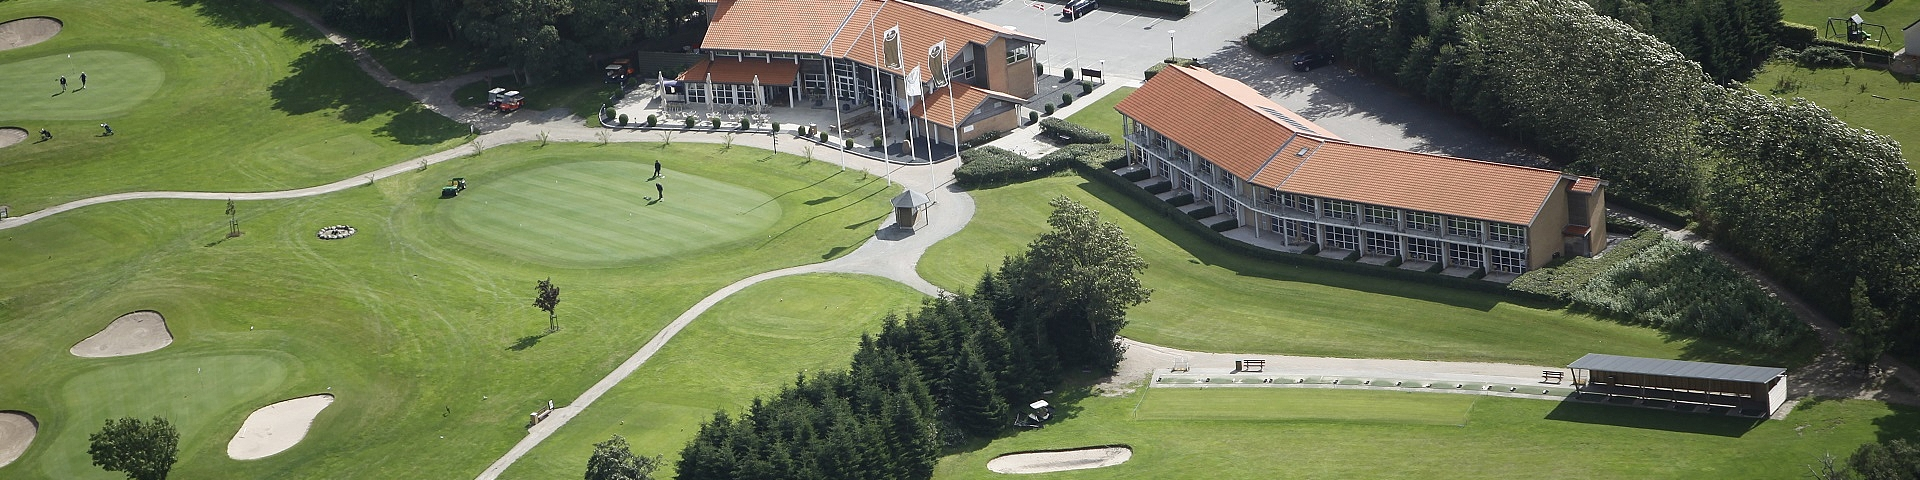 Brundtland Golfcenter